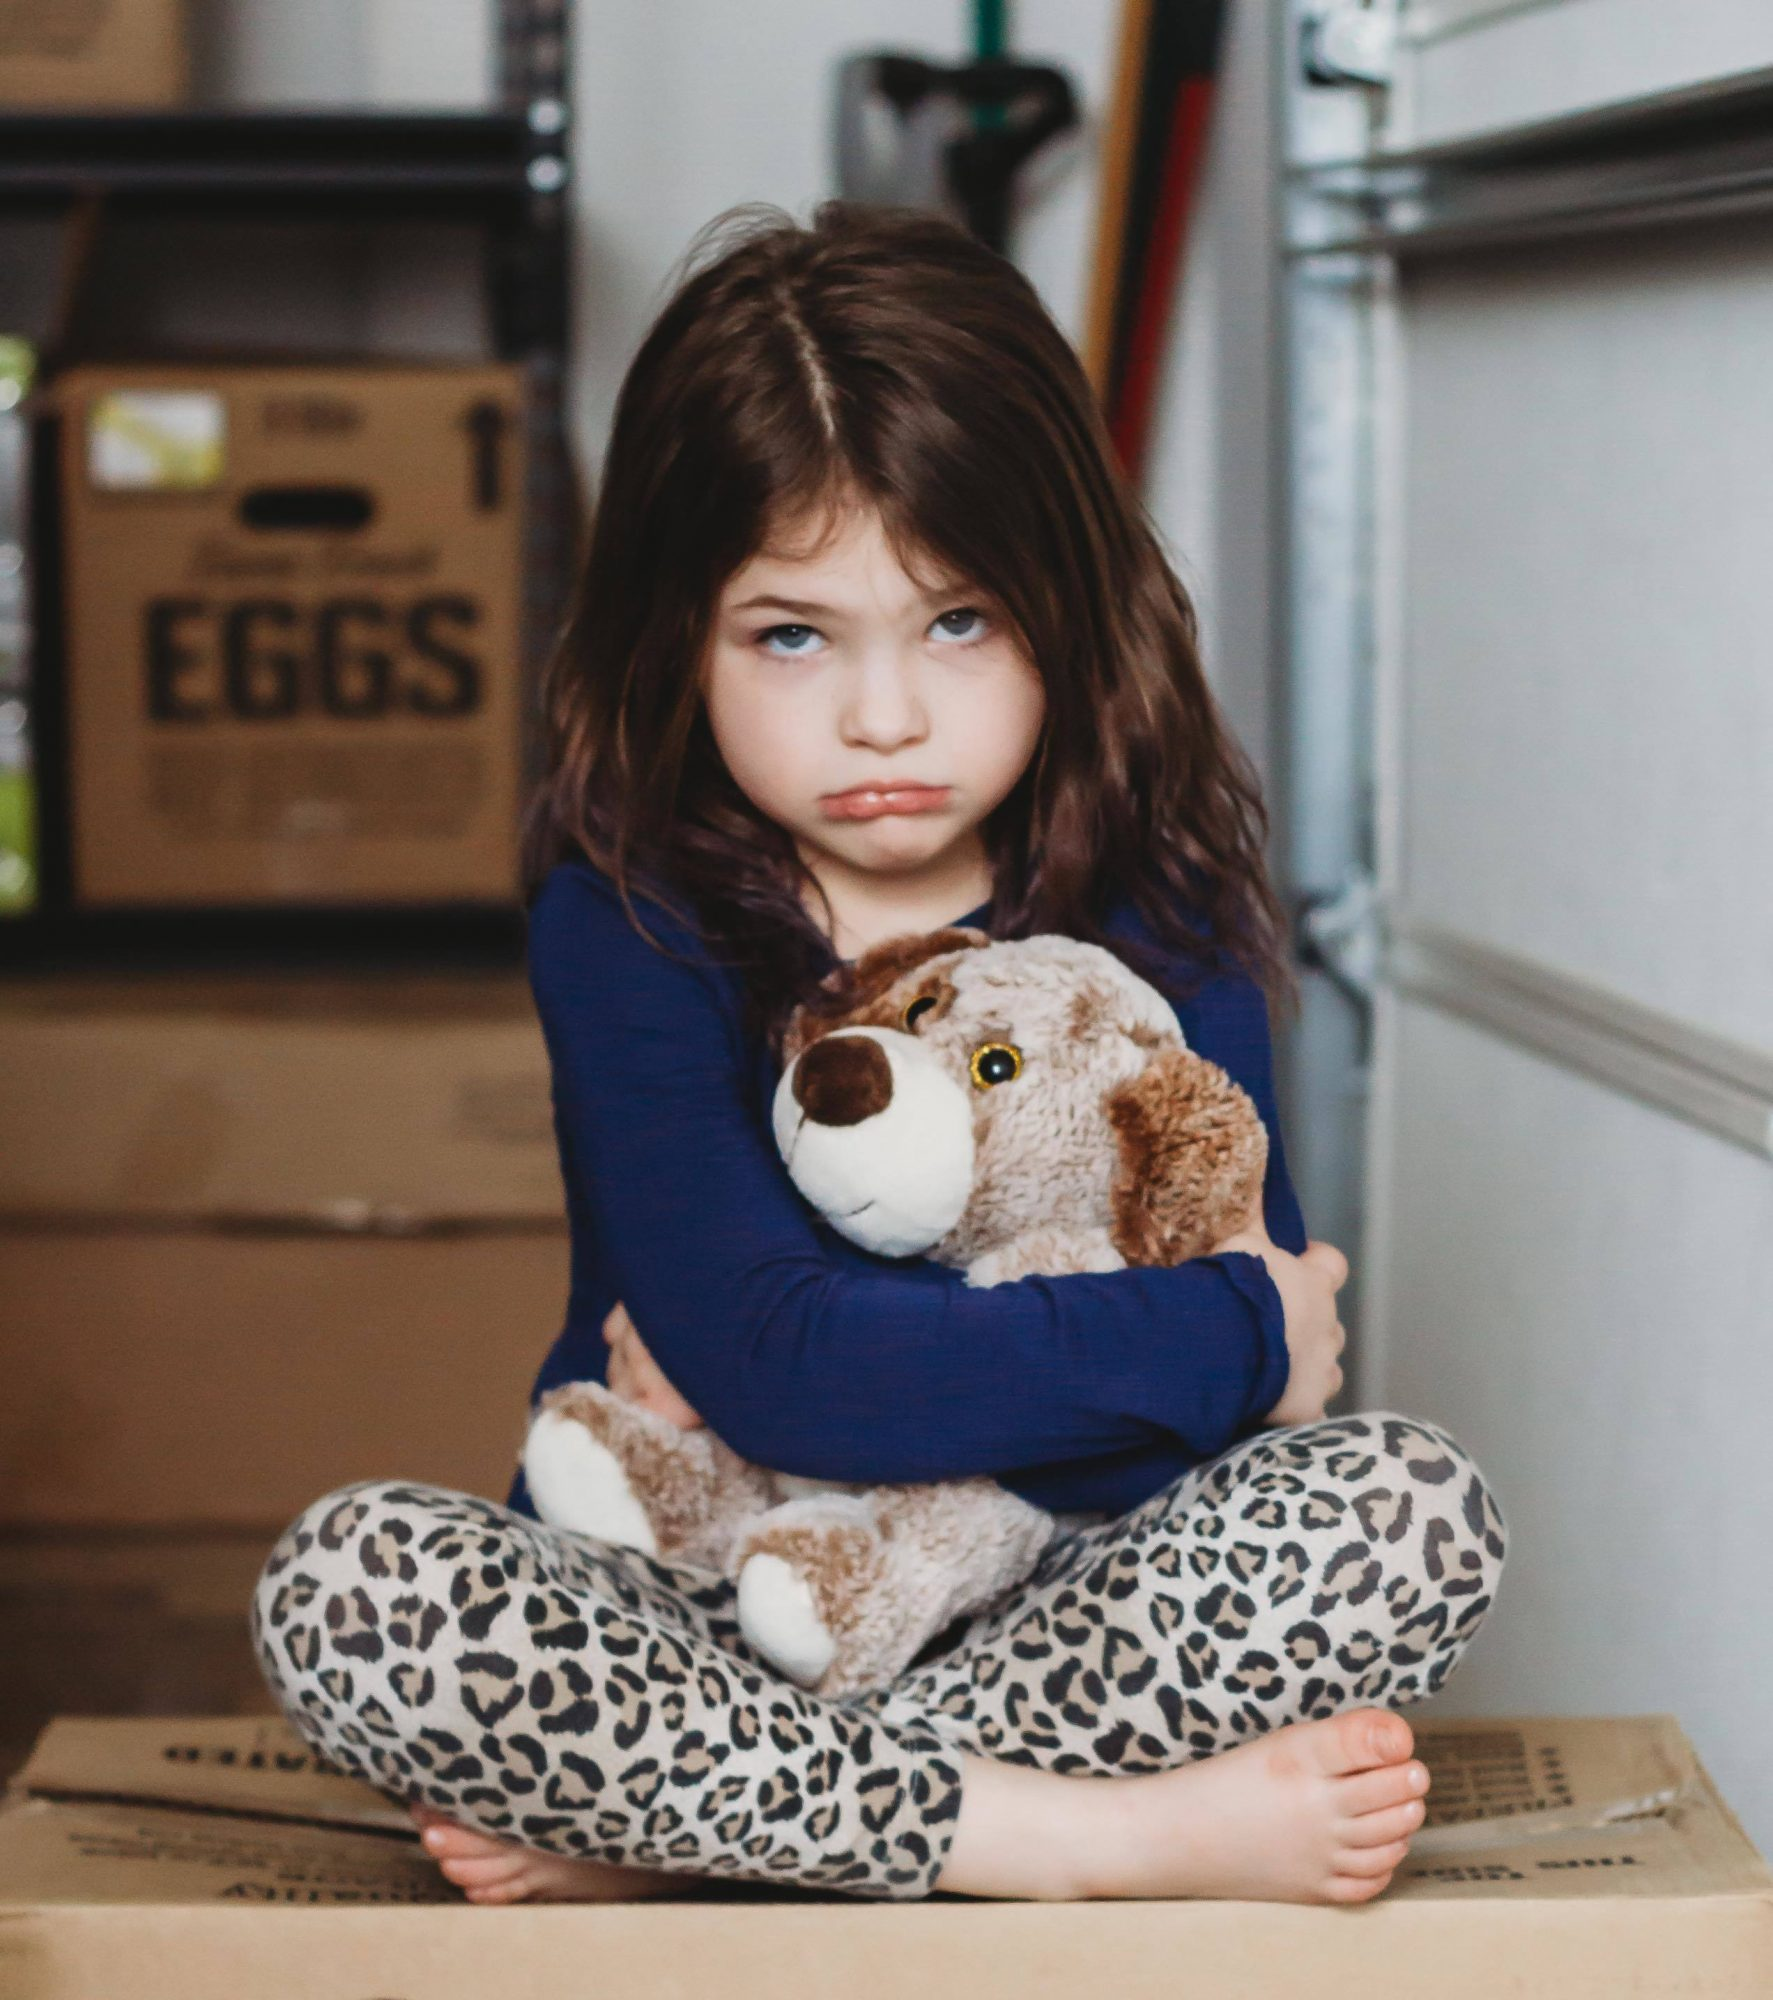 small girl with stuffed animal